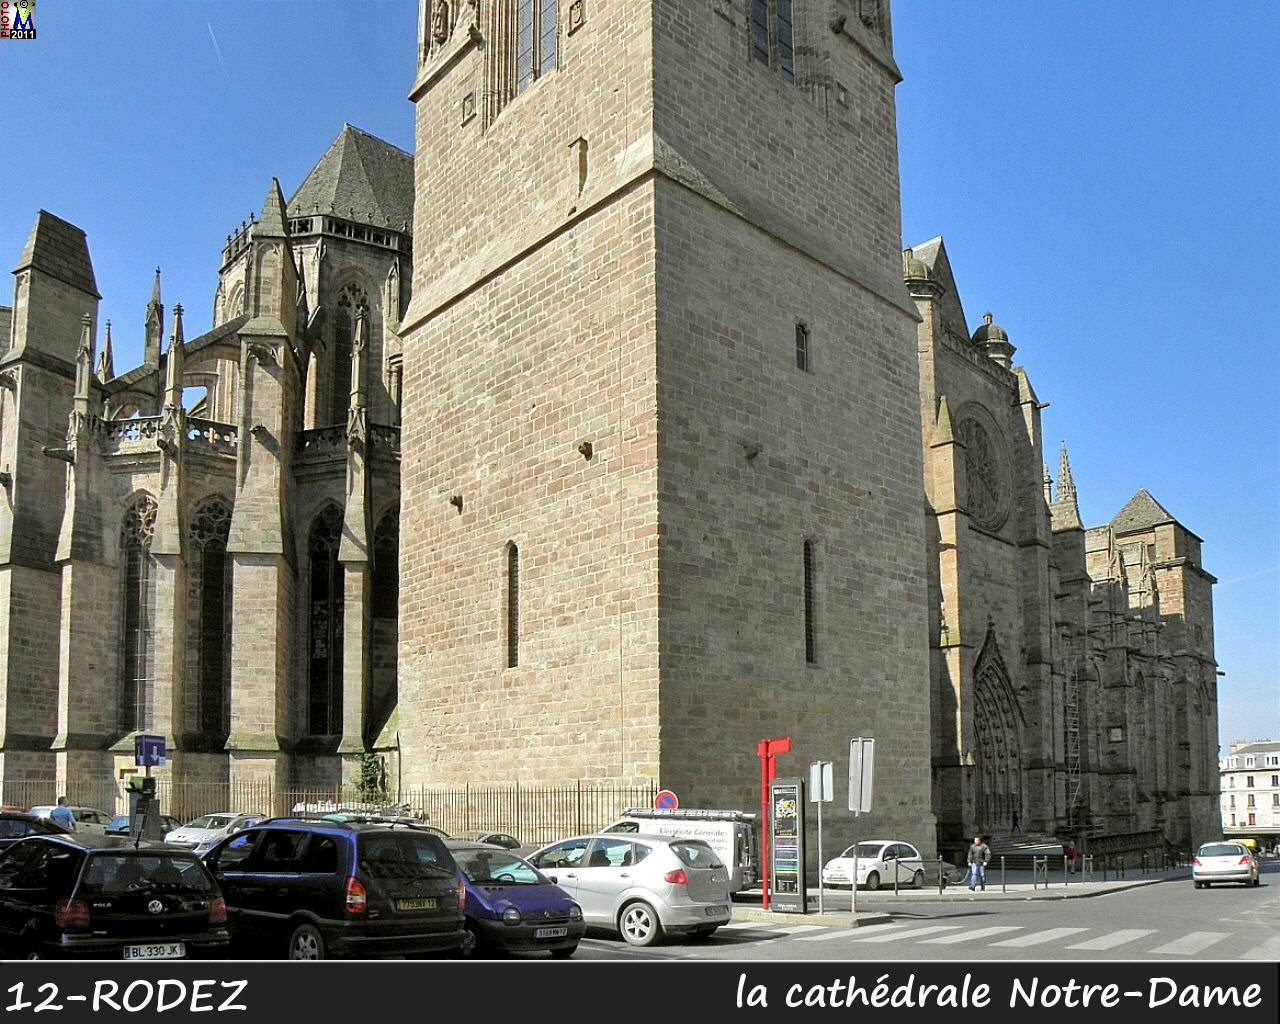 12RODEZ_cathedrale_132.jpg